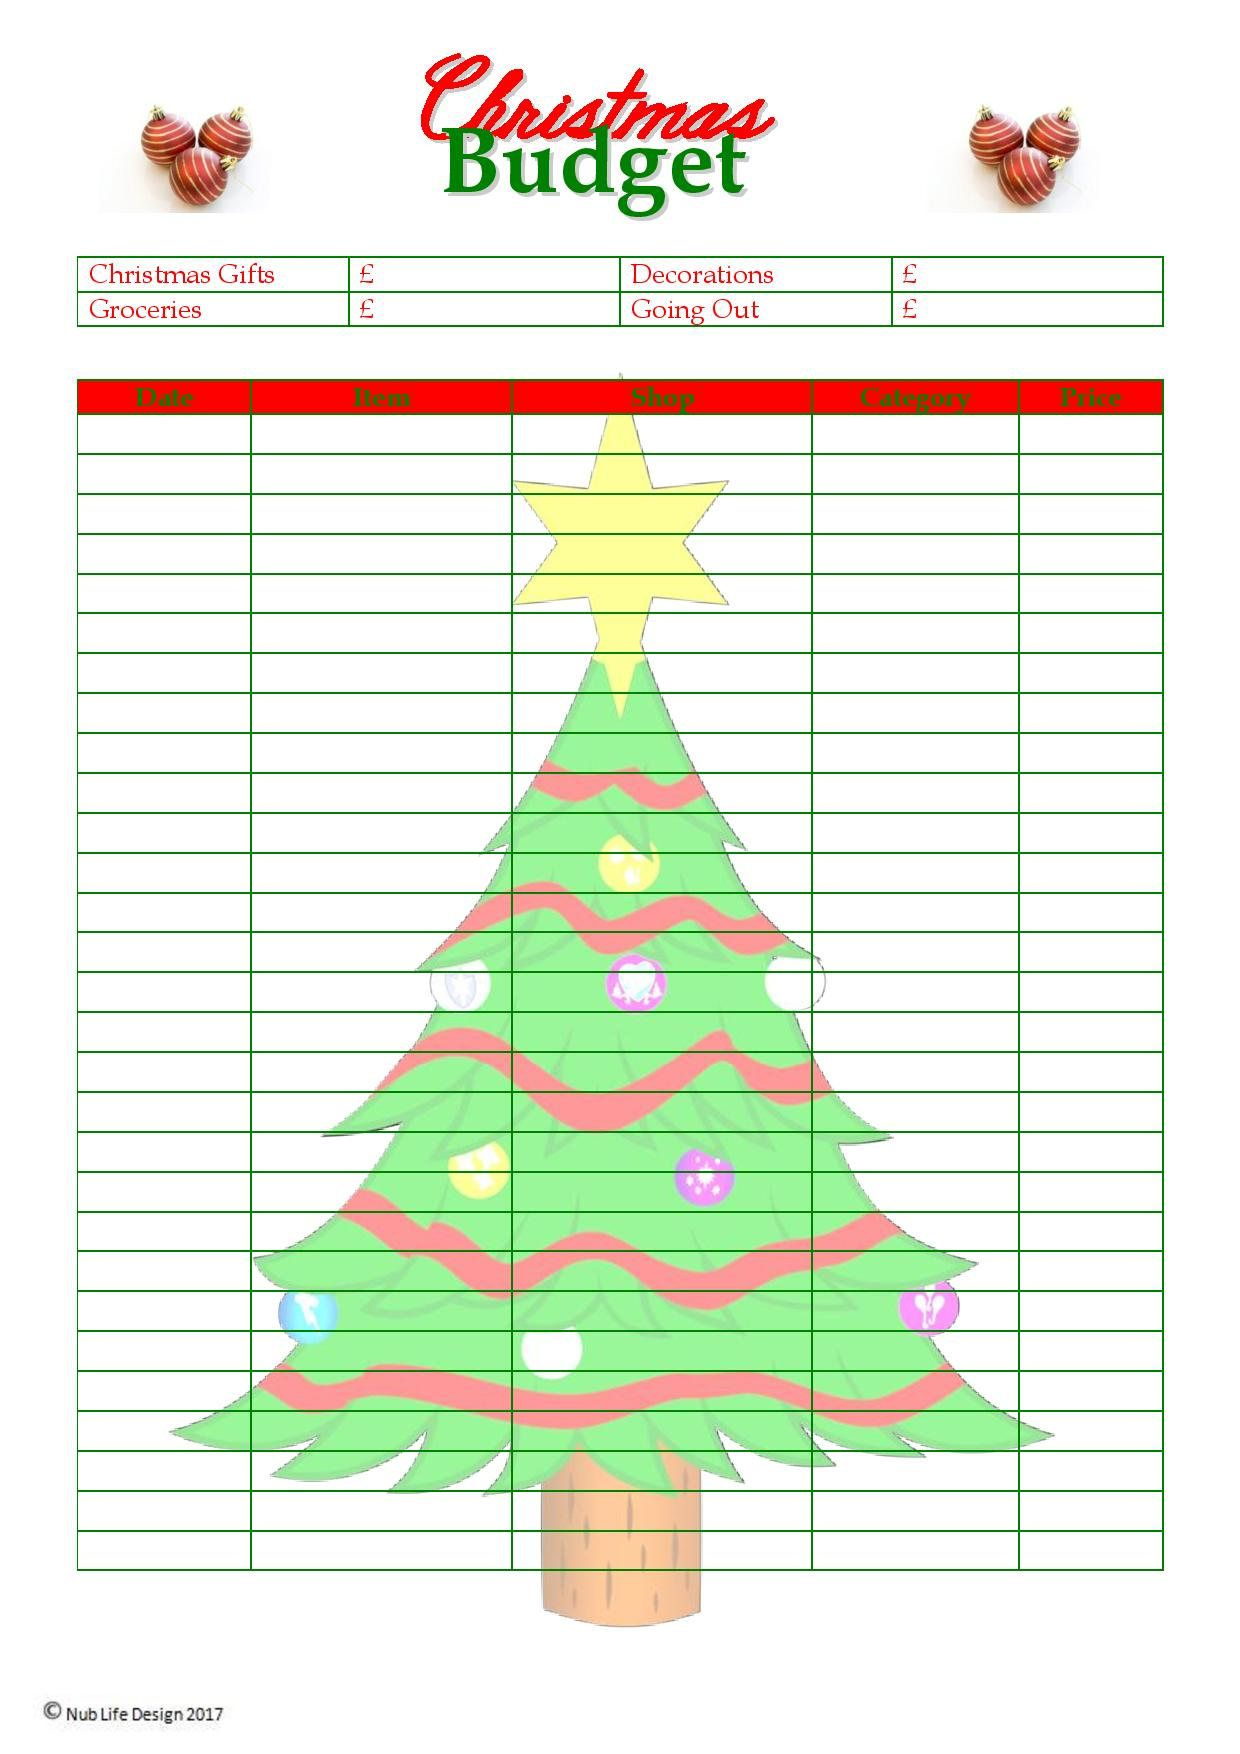 christmas budget planner printable by nublifedesign on etsy